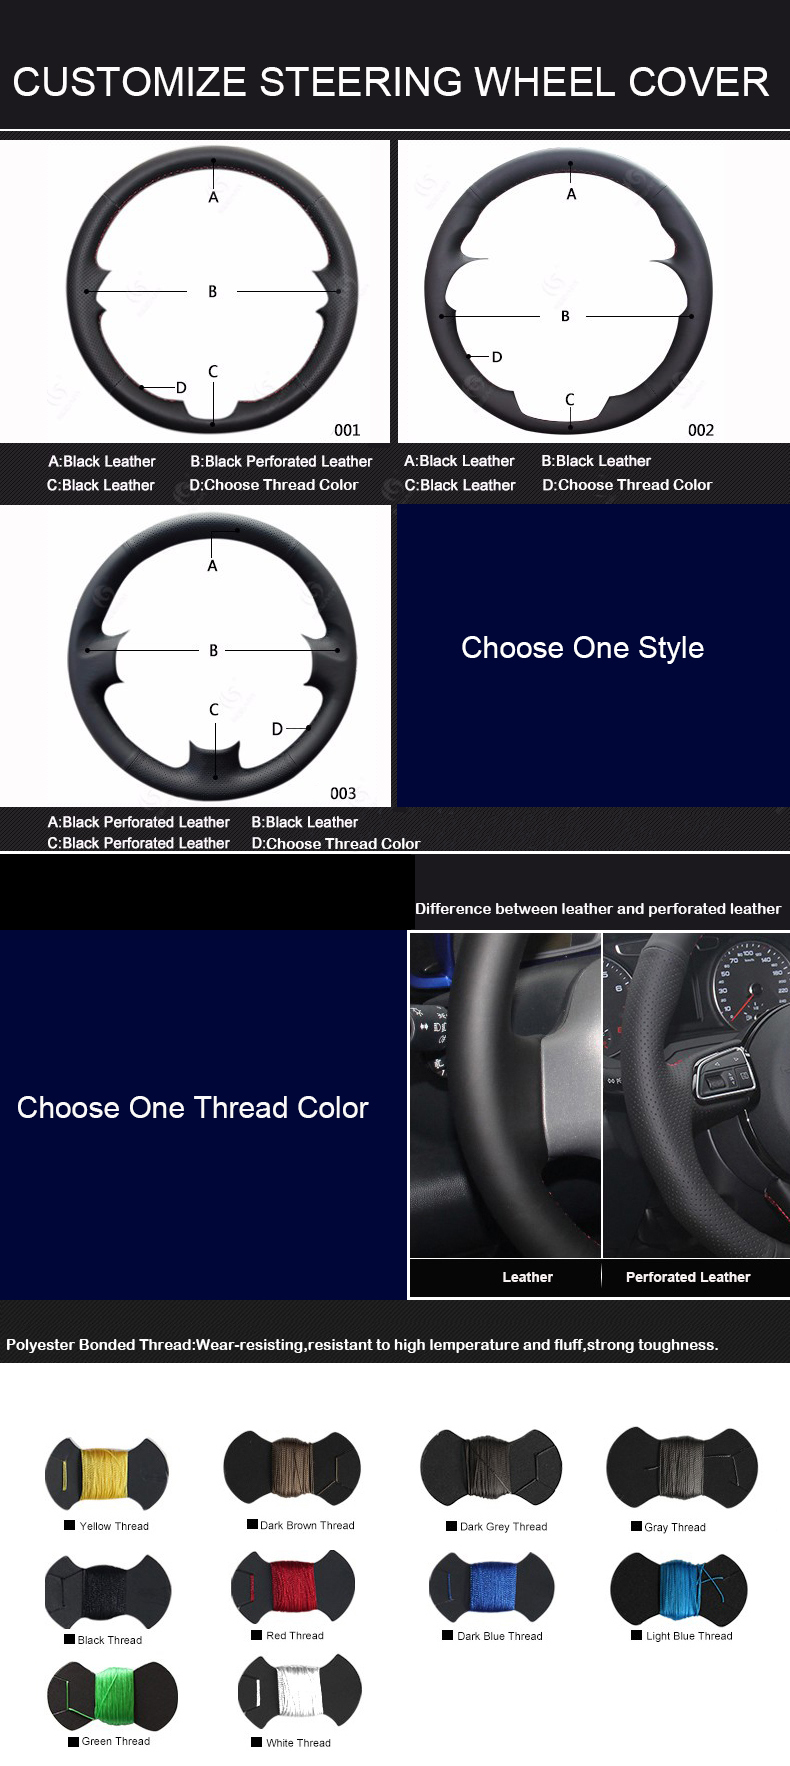 customization-steering-wheel-cover-micro-fiber-leather